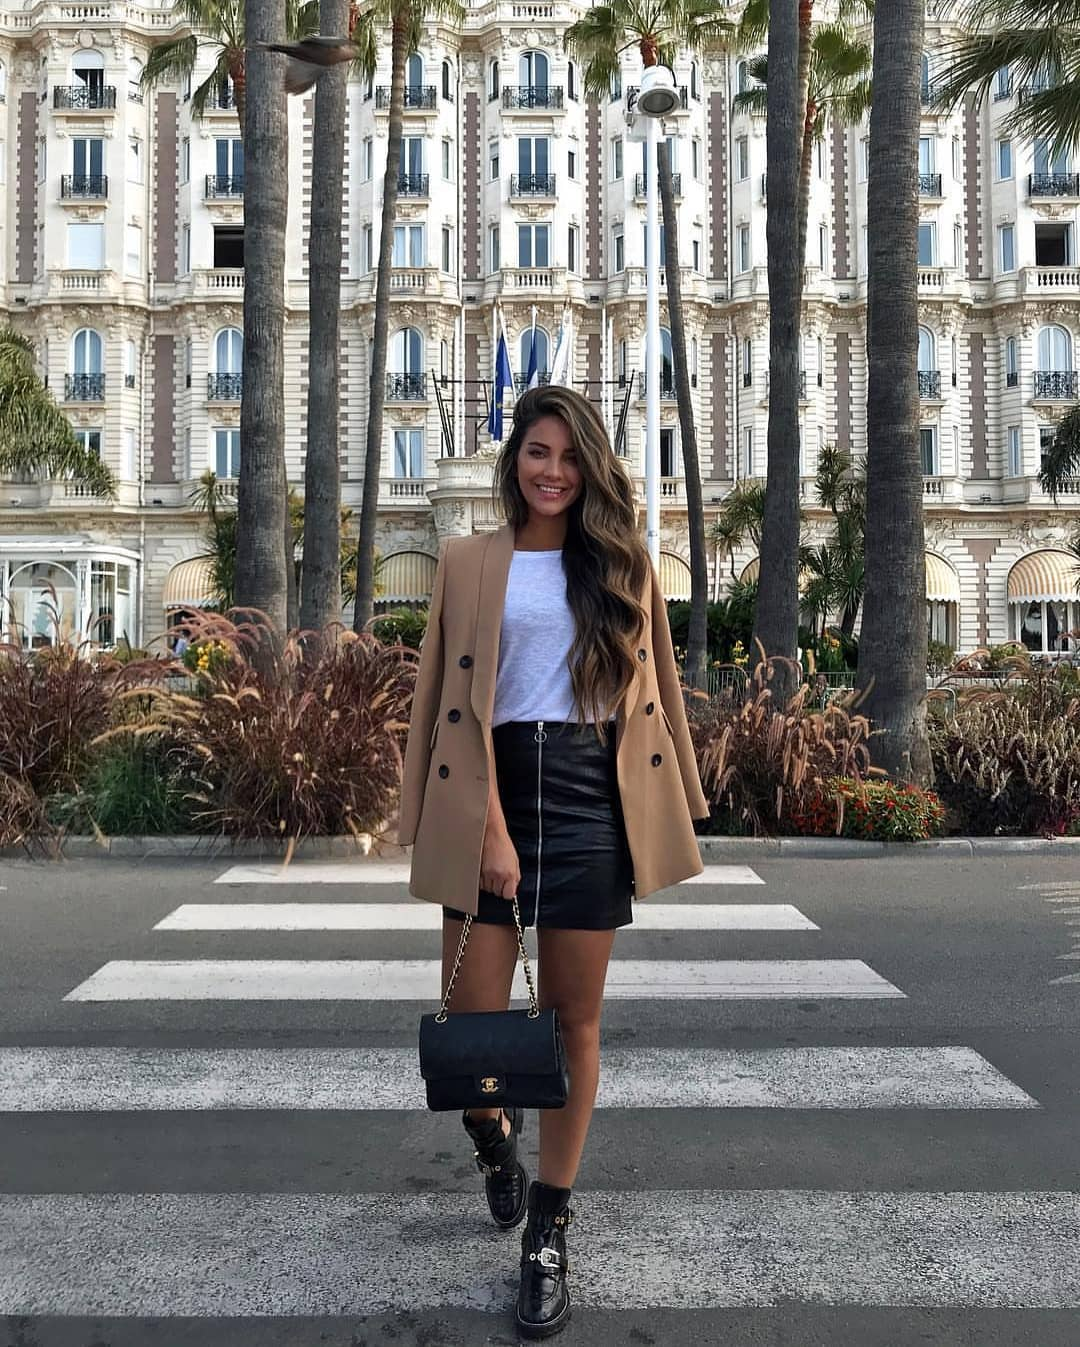 Camel Blazer With White Tee And Black Leather Mini Skirt For Spring 2020